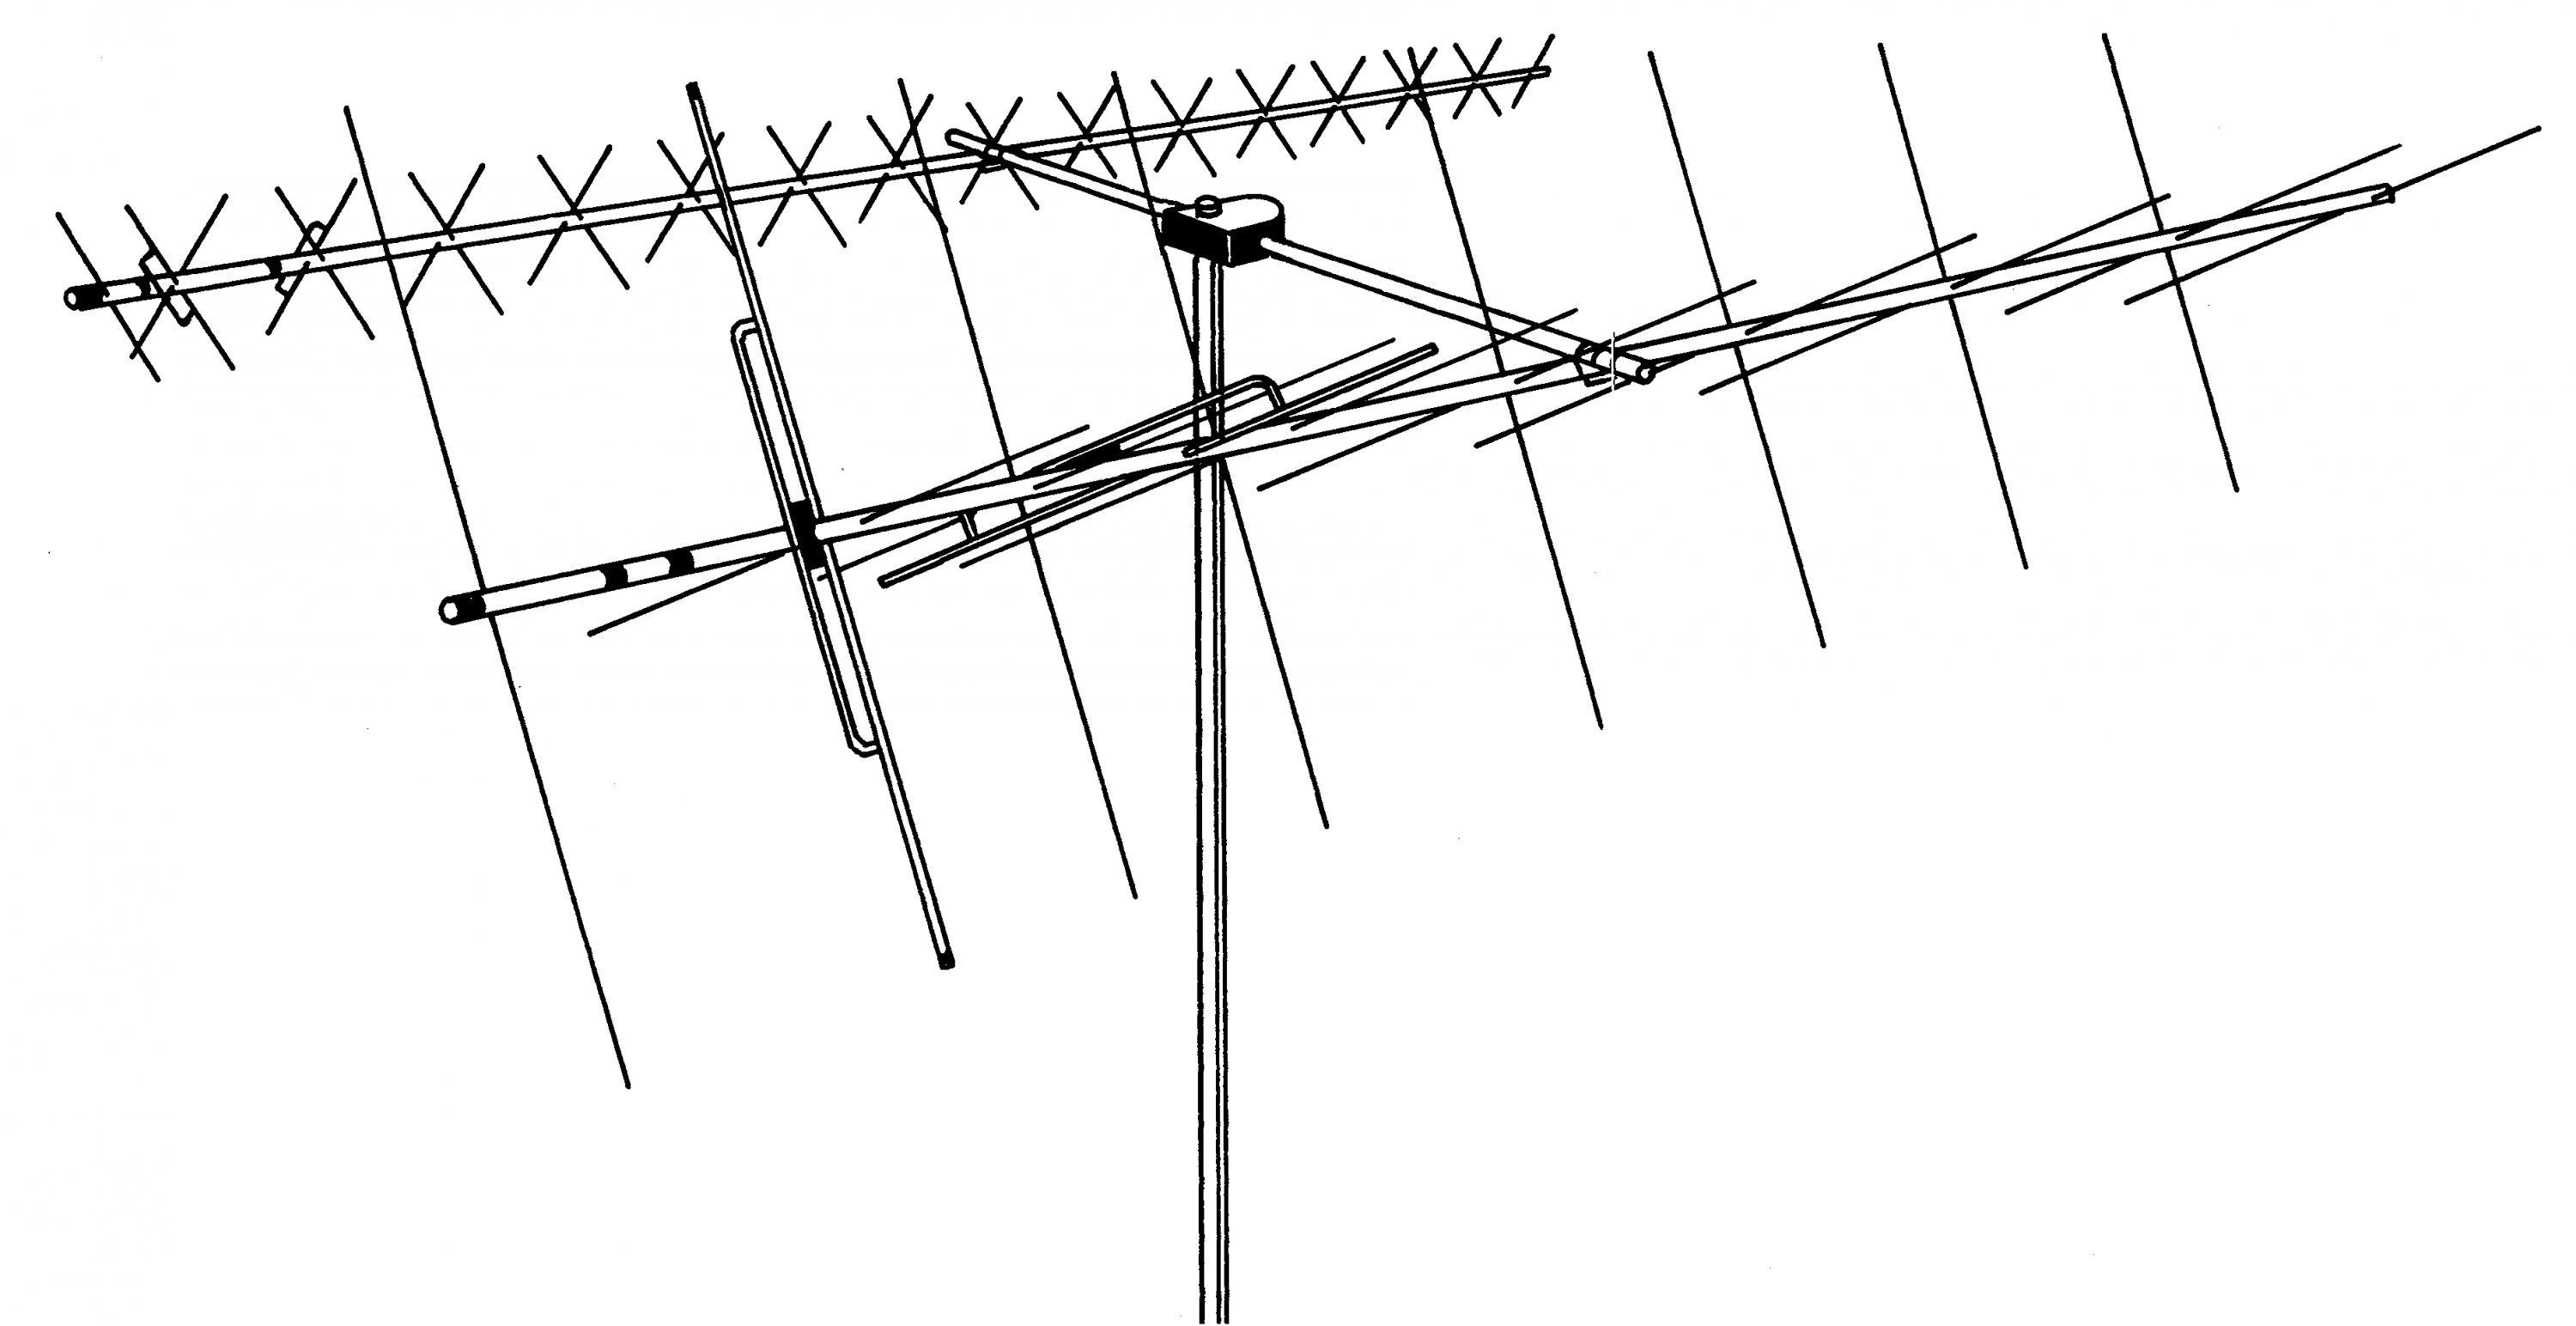 DB-218SAT HYGAIN Complete 2m/70cm Antenna System